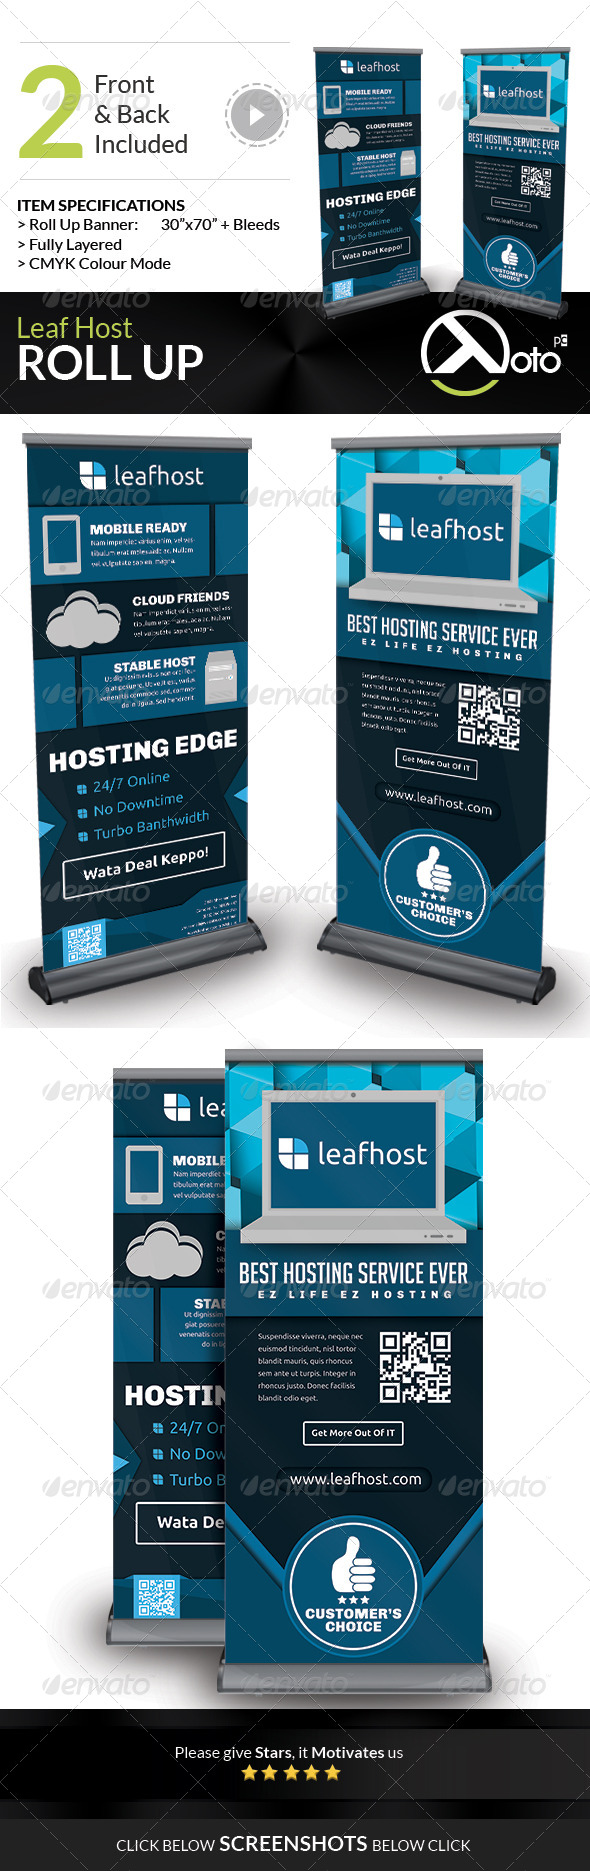 GraphicRiver Leaf Host Roll Up Banners 6882199